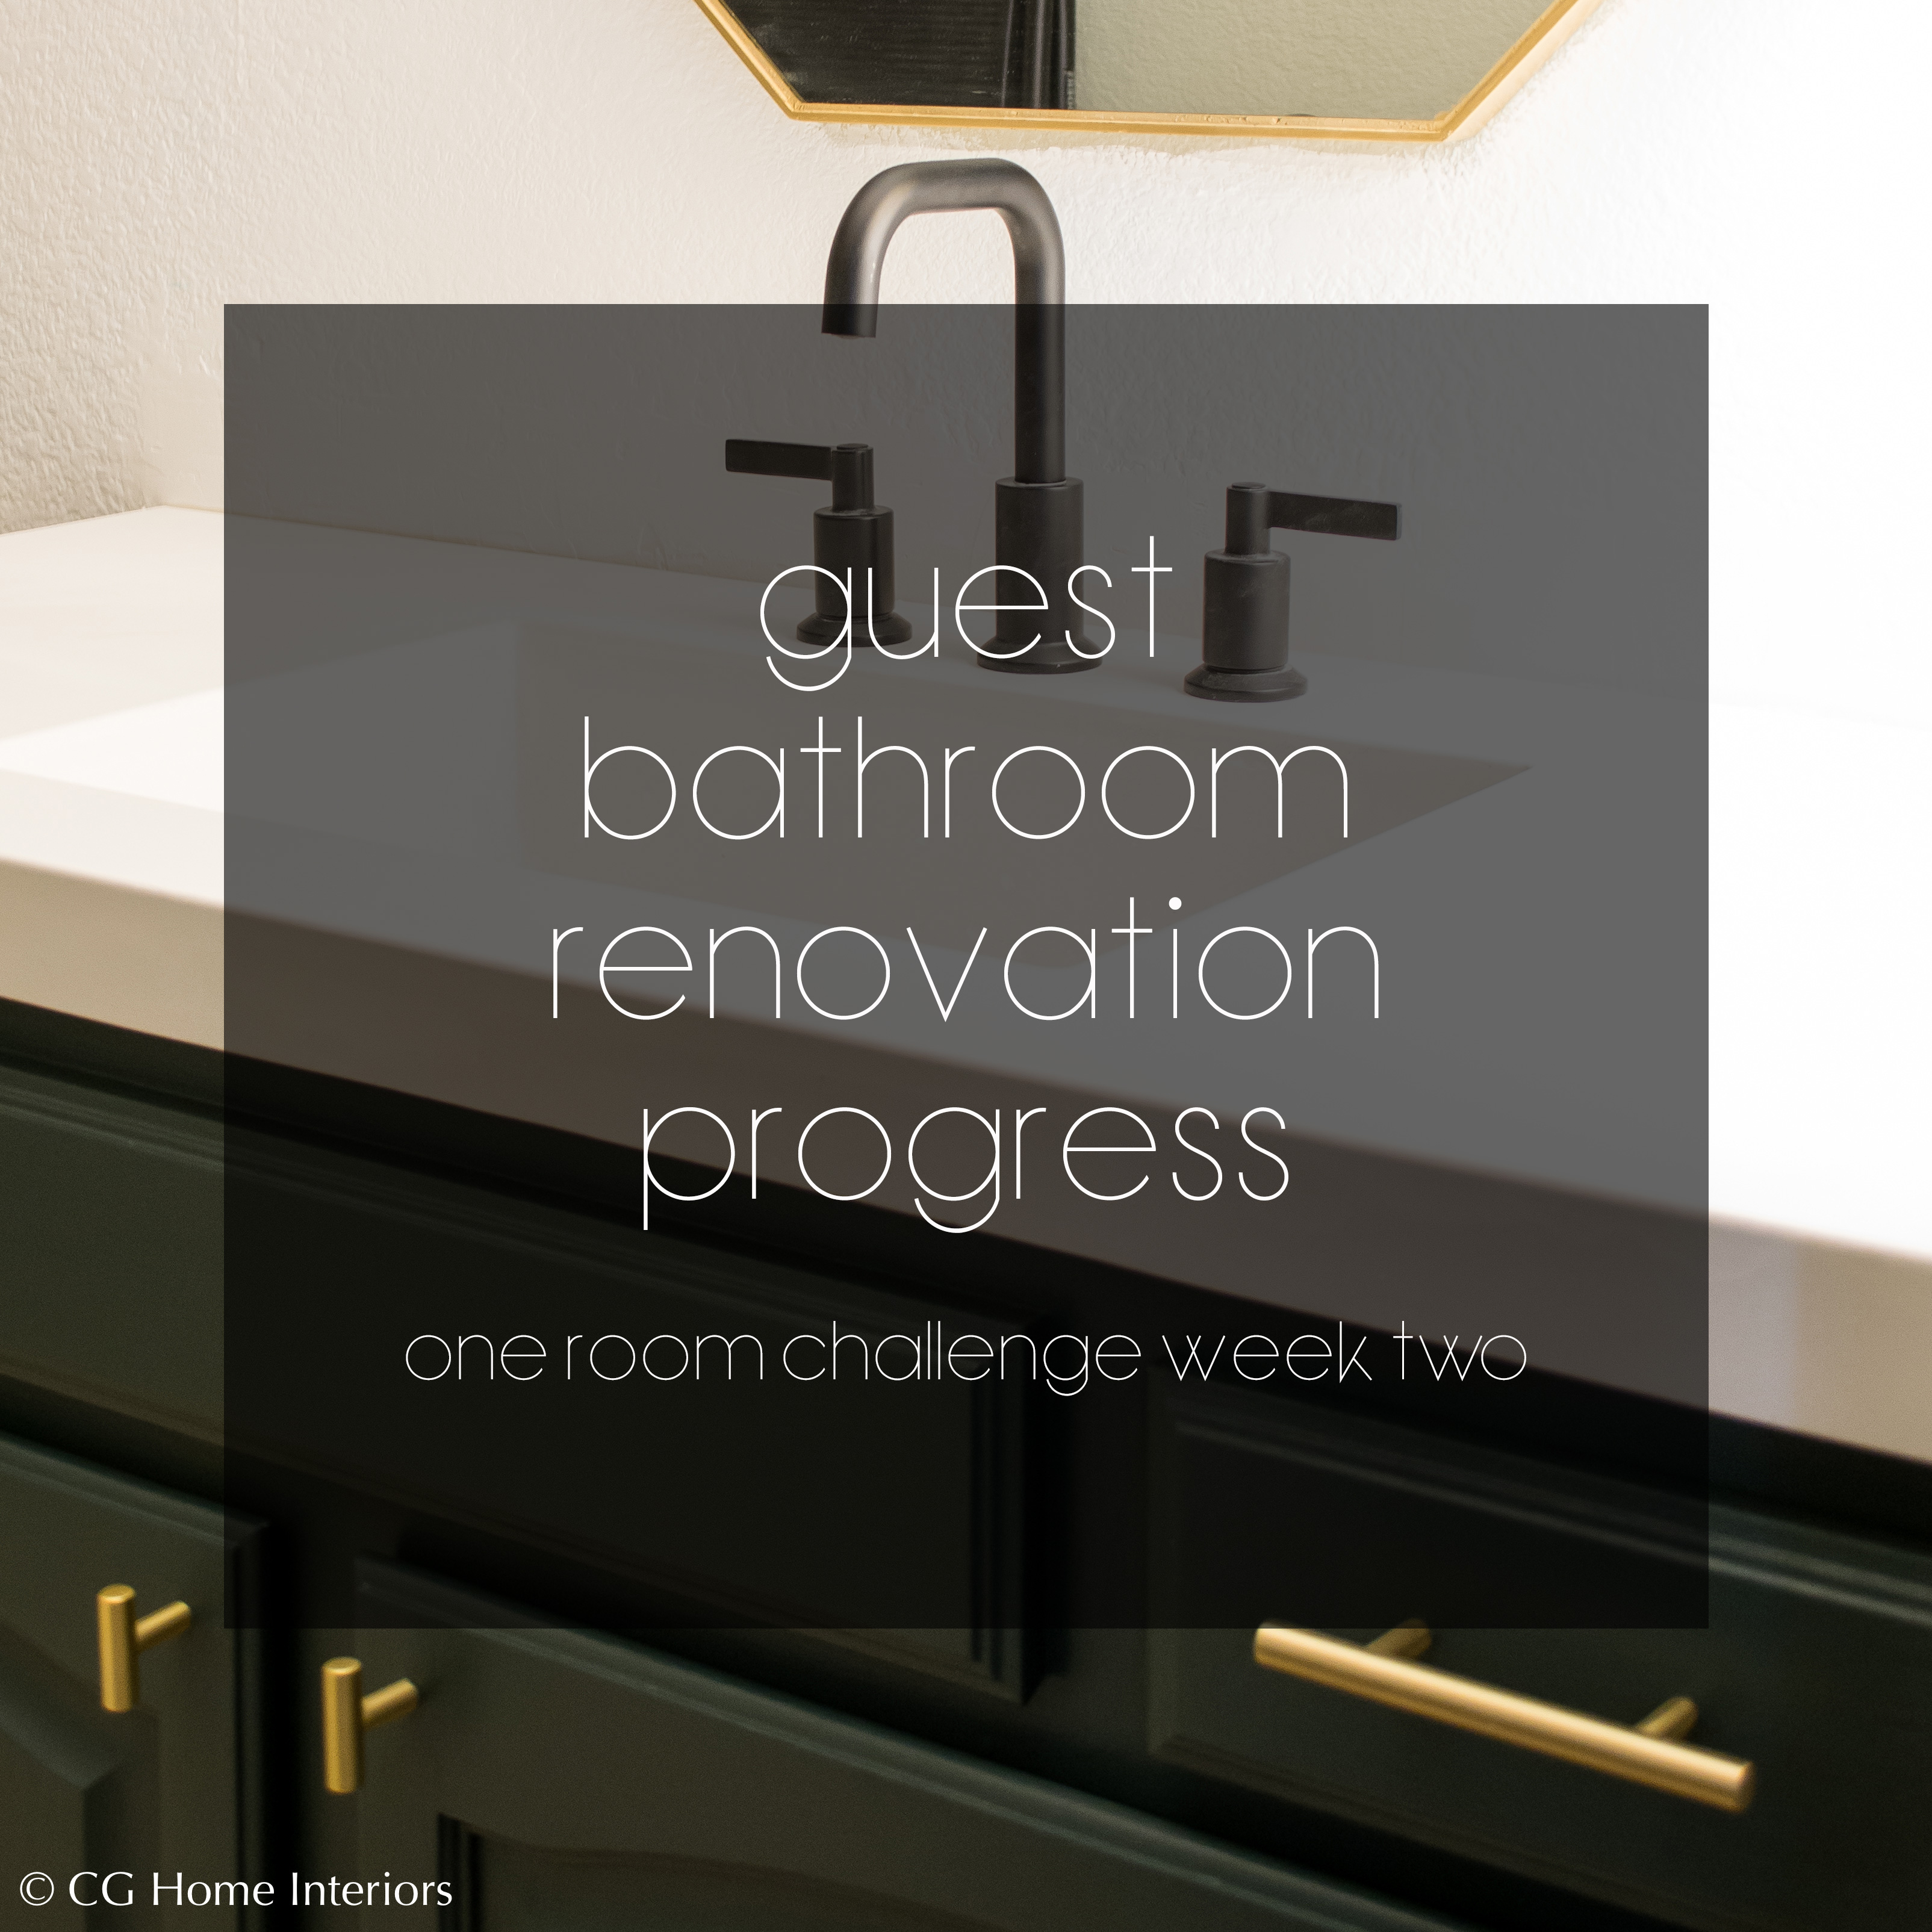 Guest Bathroom Renovation Progress - One Room Challenge Week 2